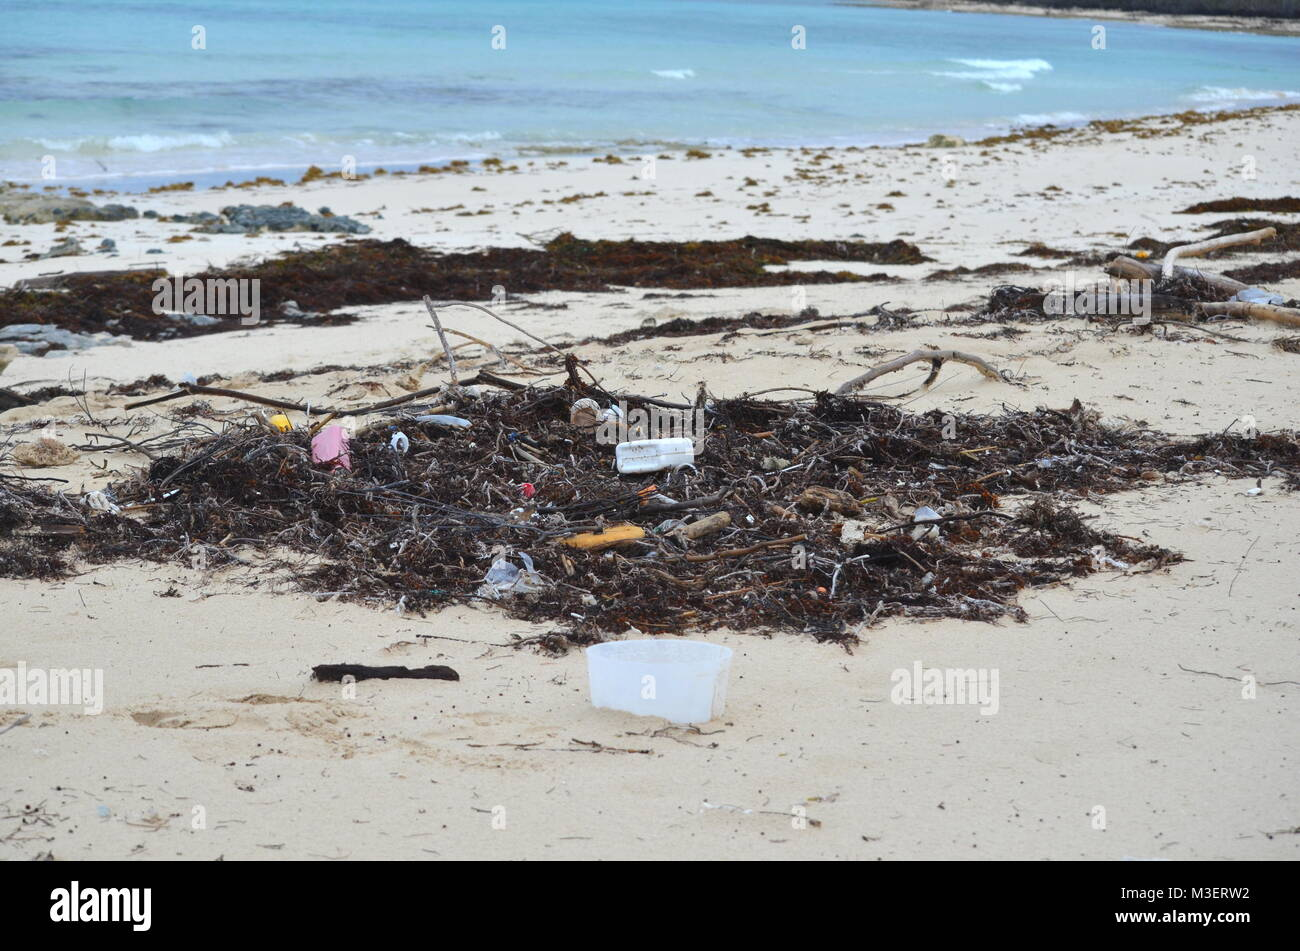 Garbage, plastic waste and heaps of dead marine plants and animals washed out on a beach in Cayo Coco Cuba after - Stock Image